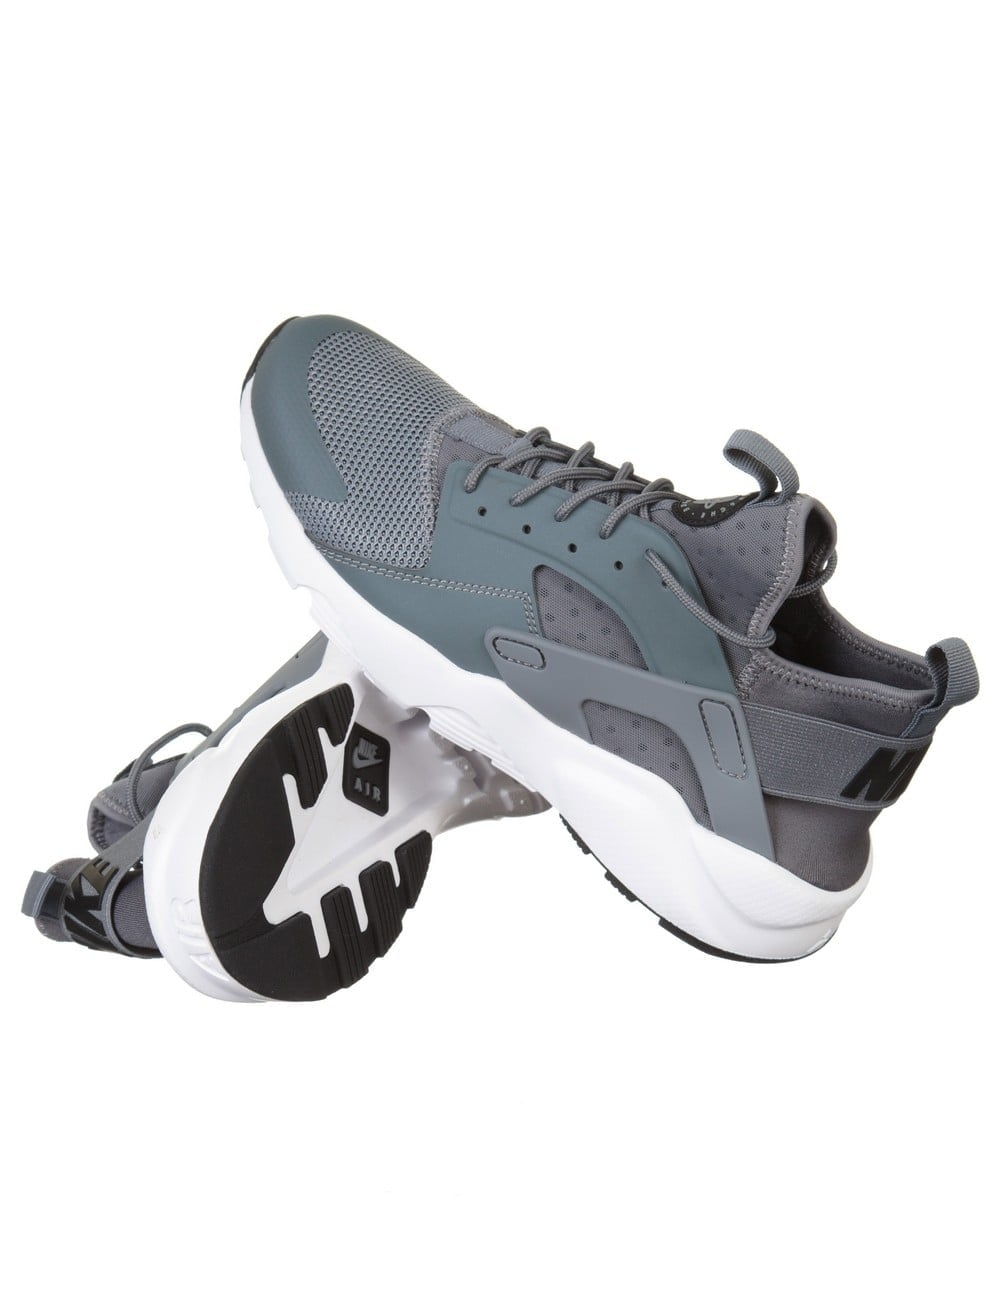 Nike Air Huarache Ultra Shoes - Cool Grey White - Footwear from Fat ... dad97524f